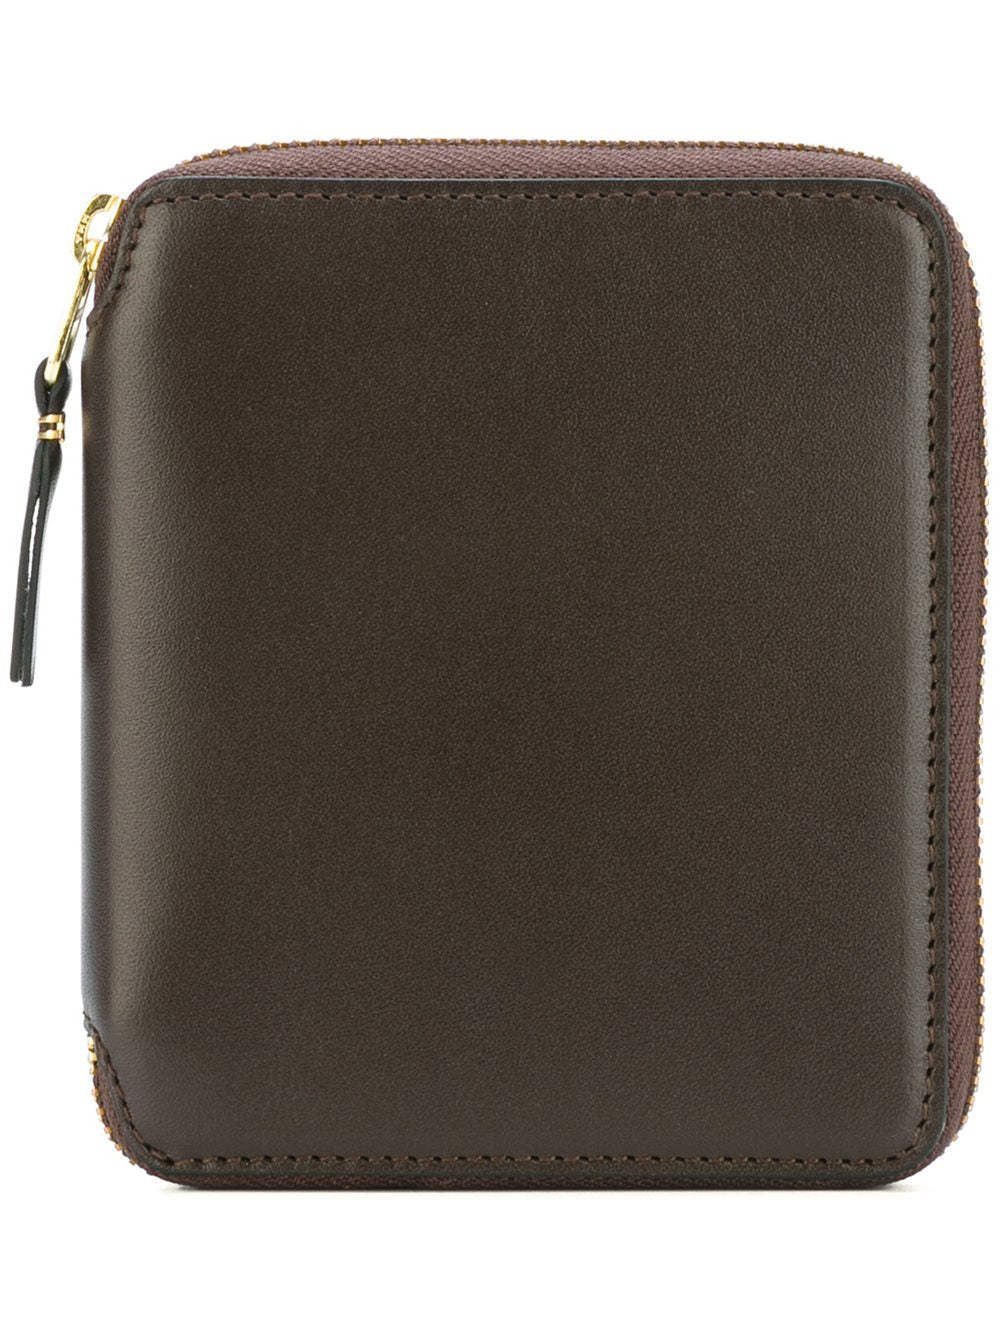 Zipped Leather Wallet | SA2100C